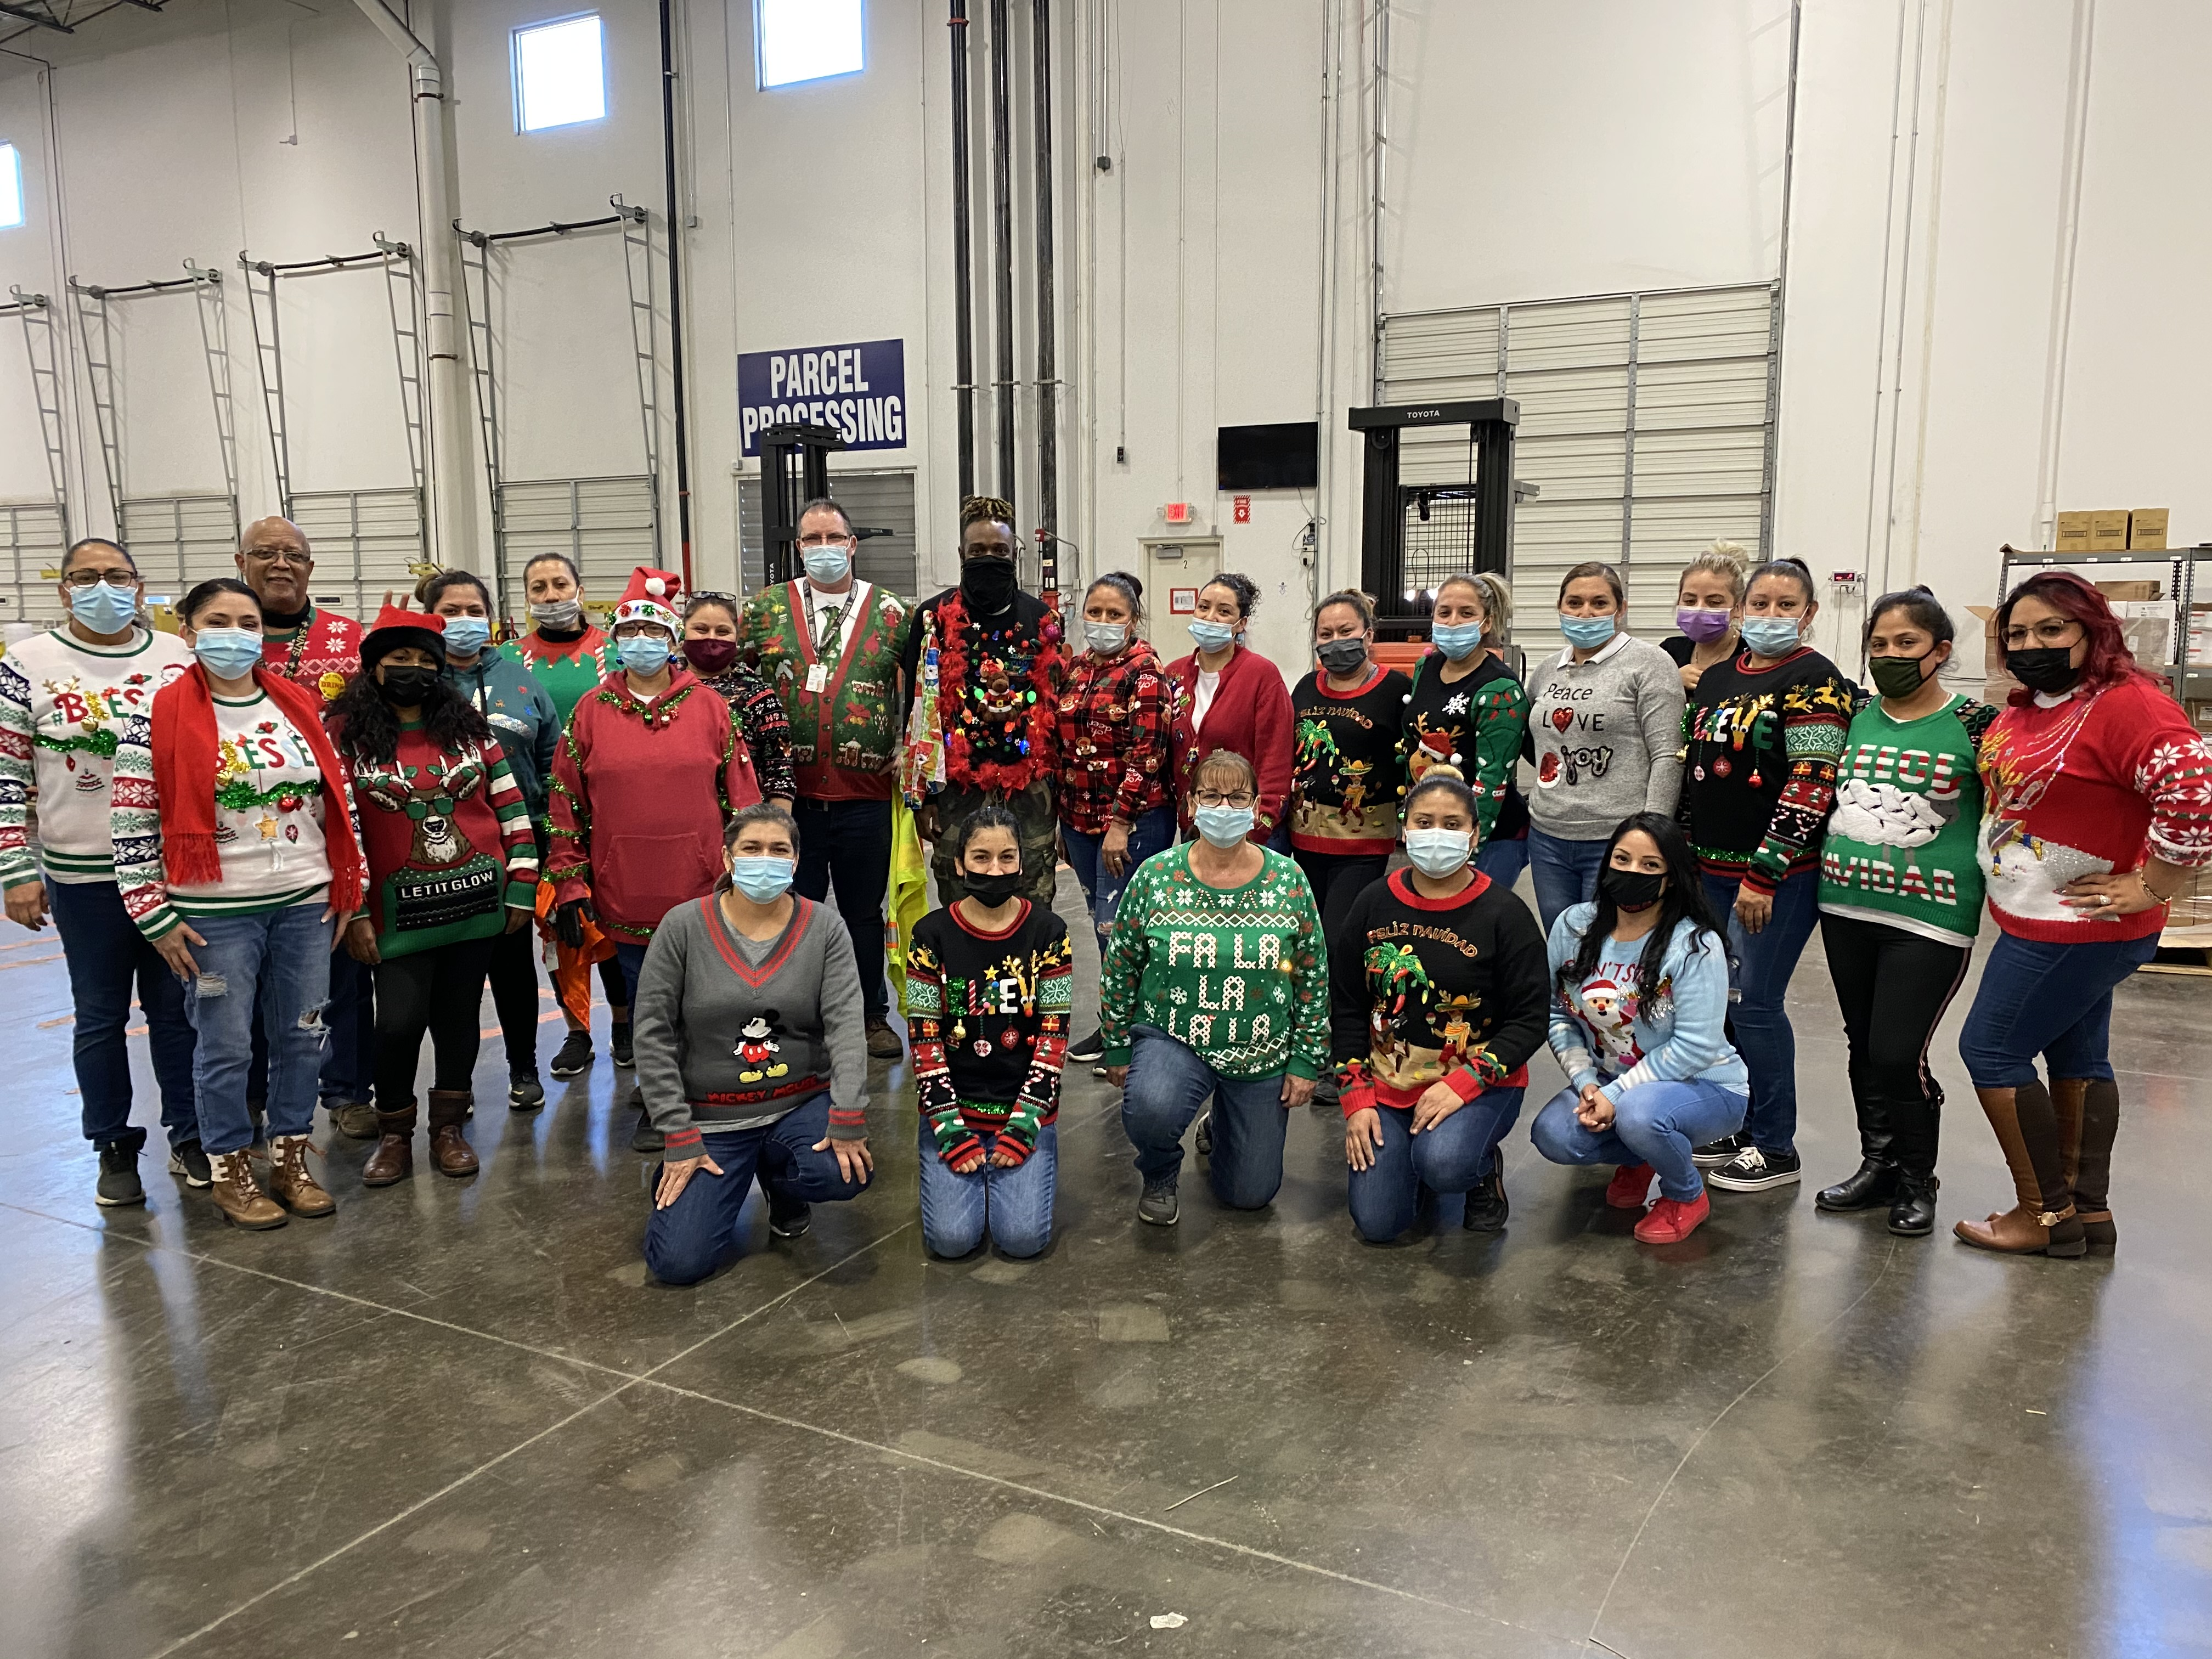 The Shippers Group Ugly Christmas Sweater Day Wintergreen-1, TX AM Shift